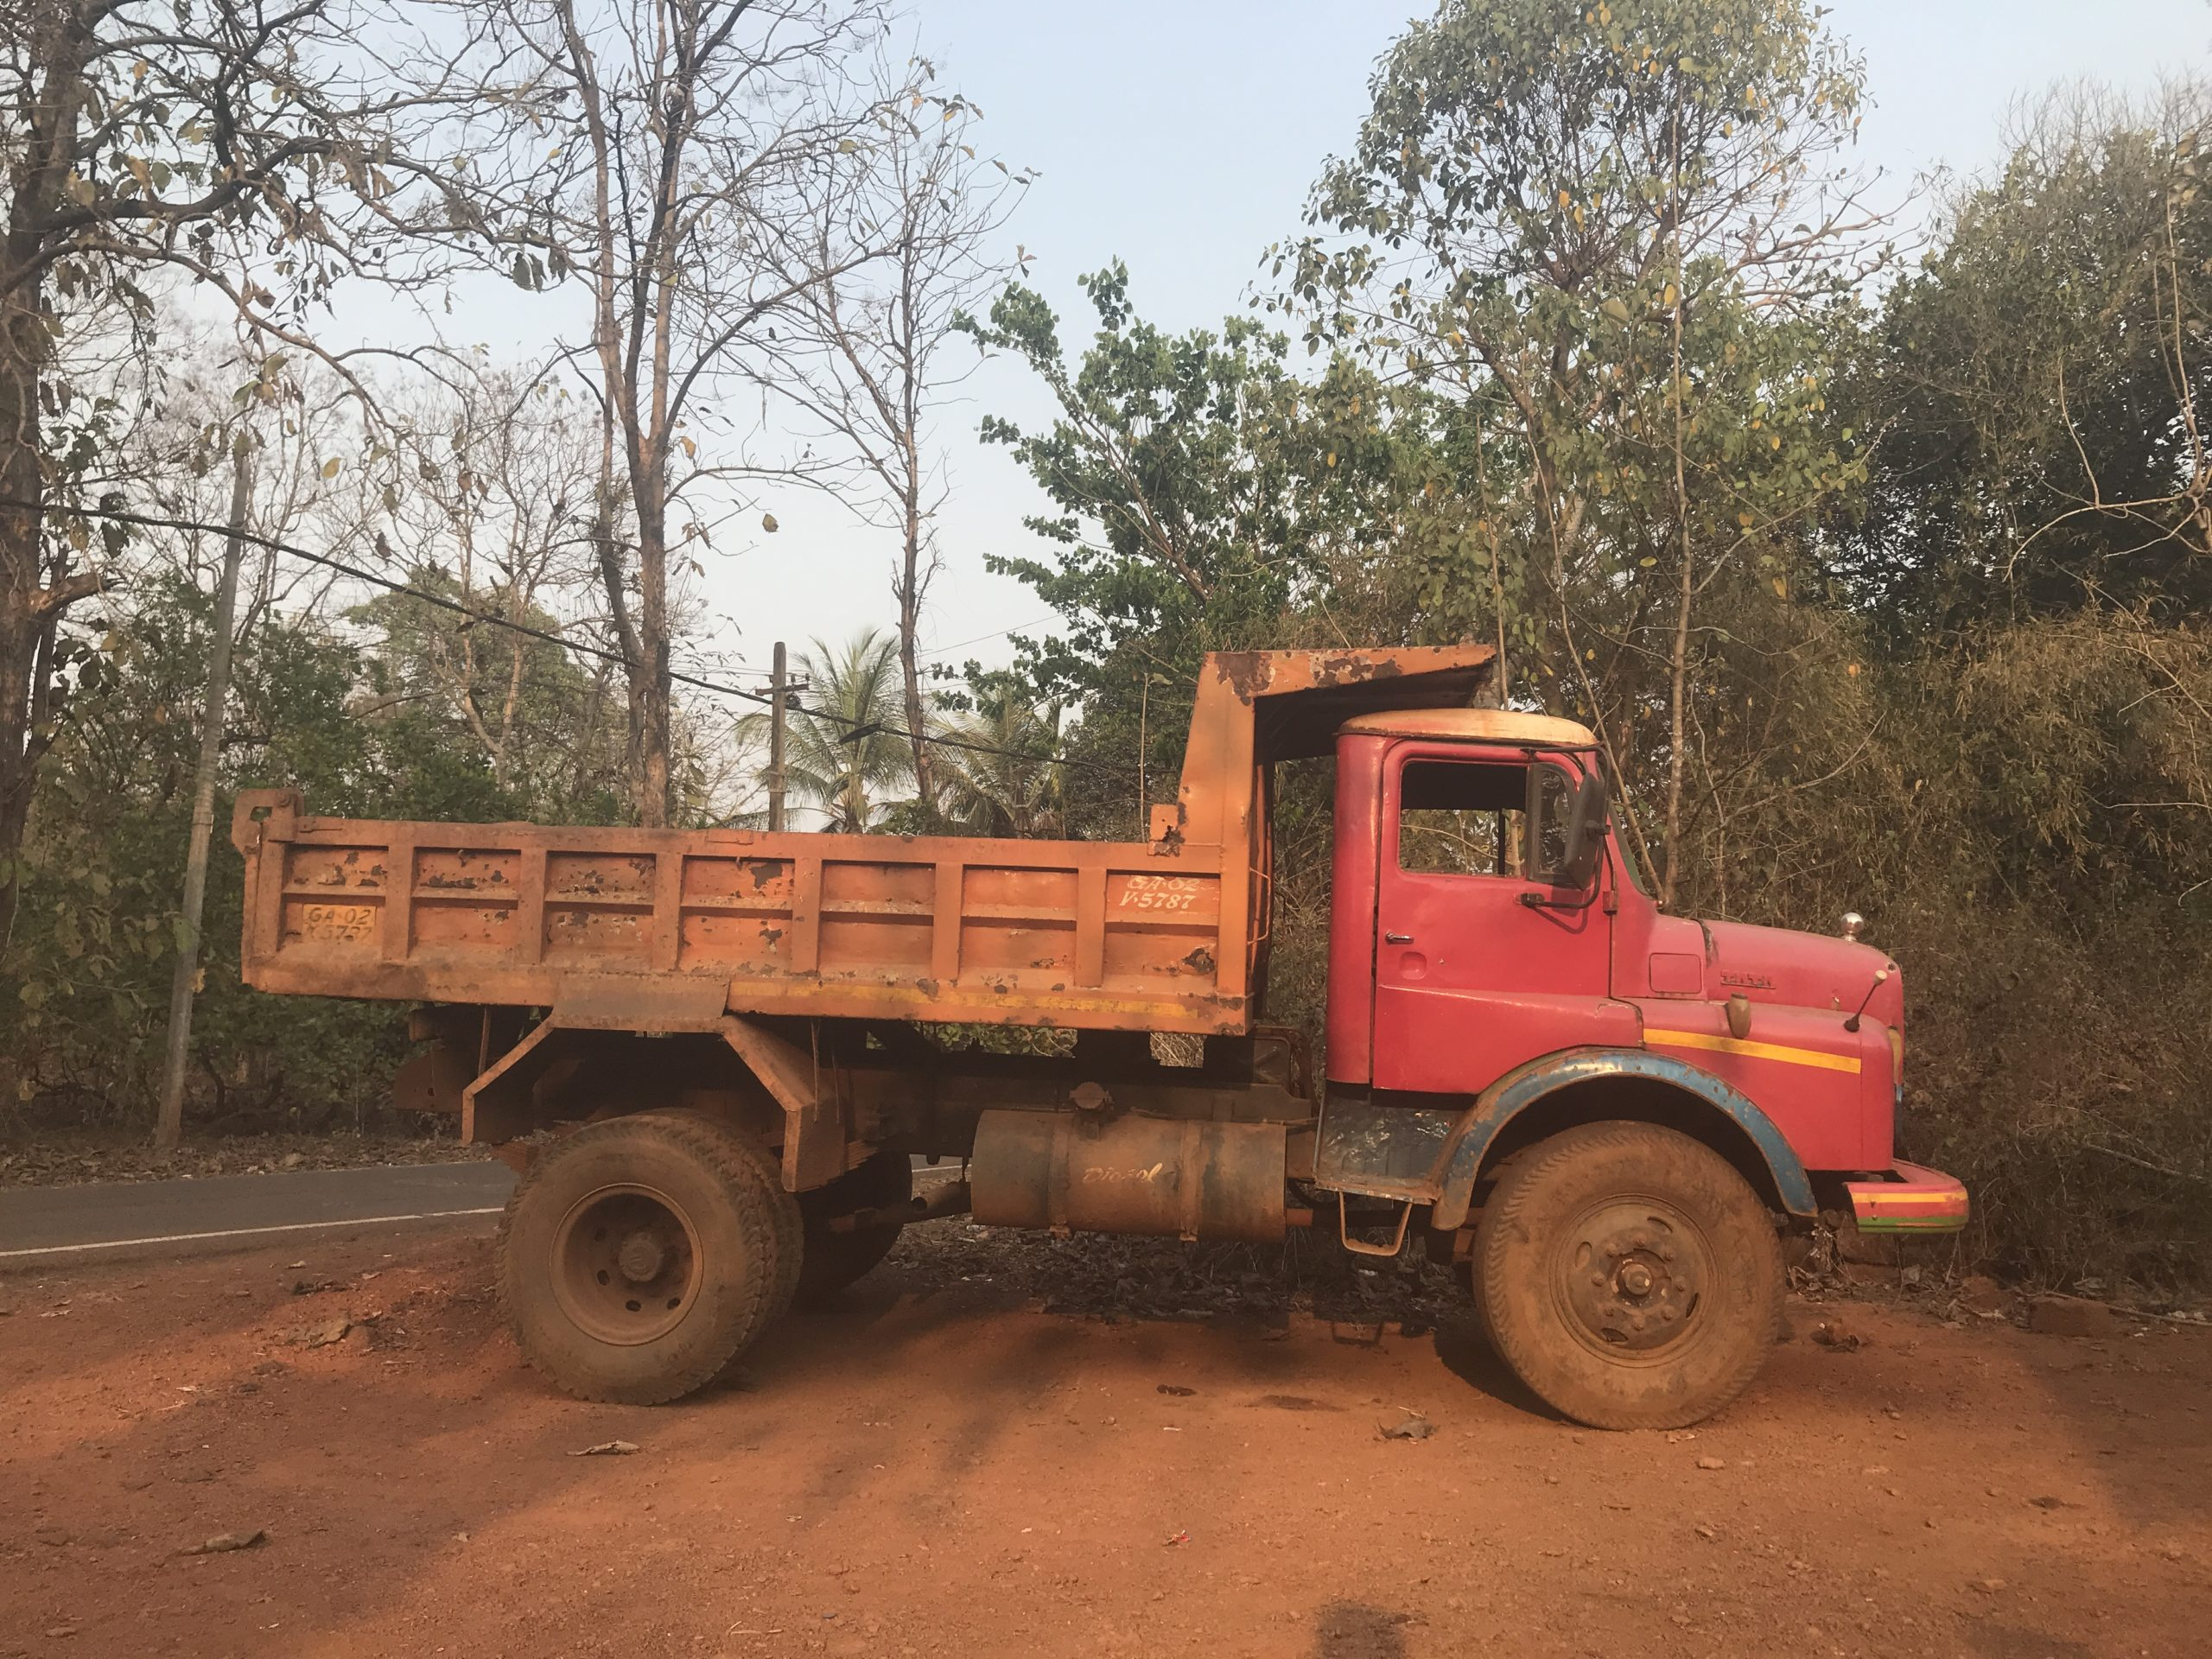 A mining truck in Pissurlem, a mining-affected village in north Goa. Photo by Supriya Vohra.